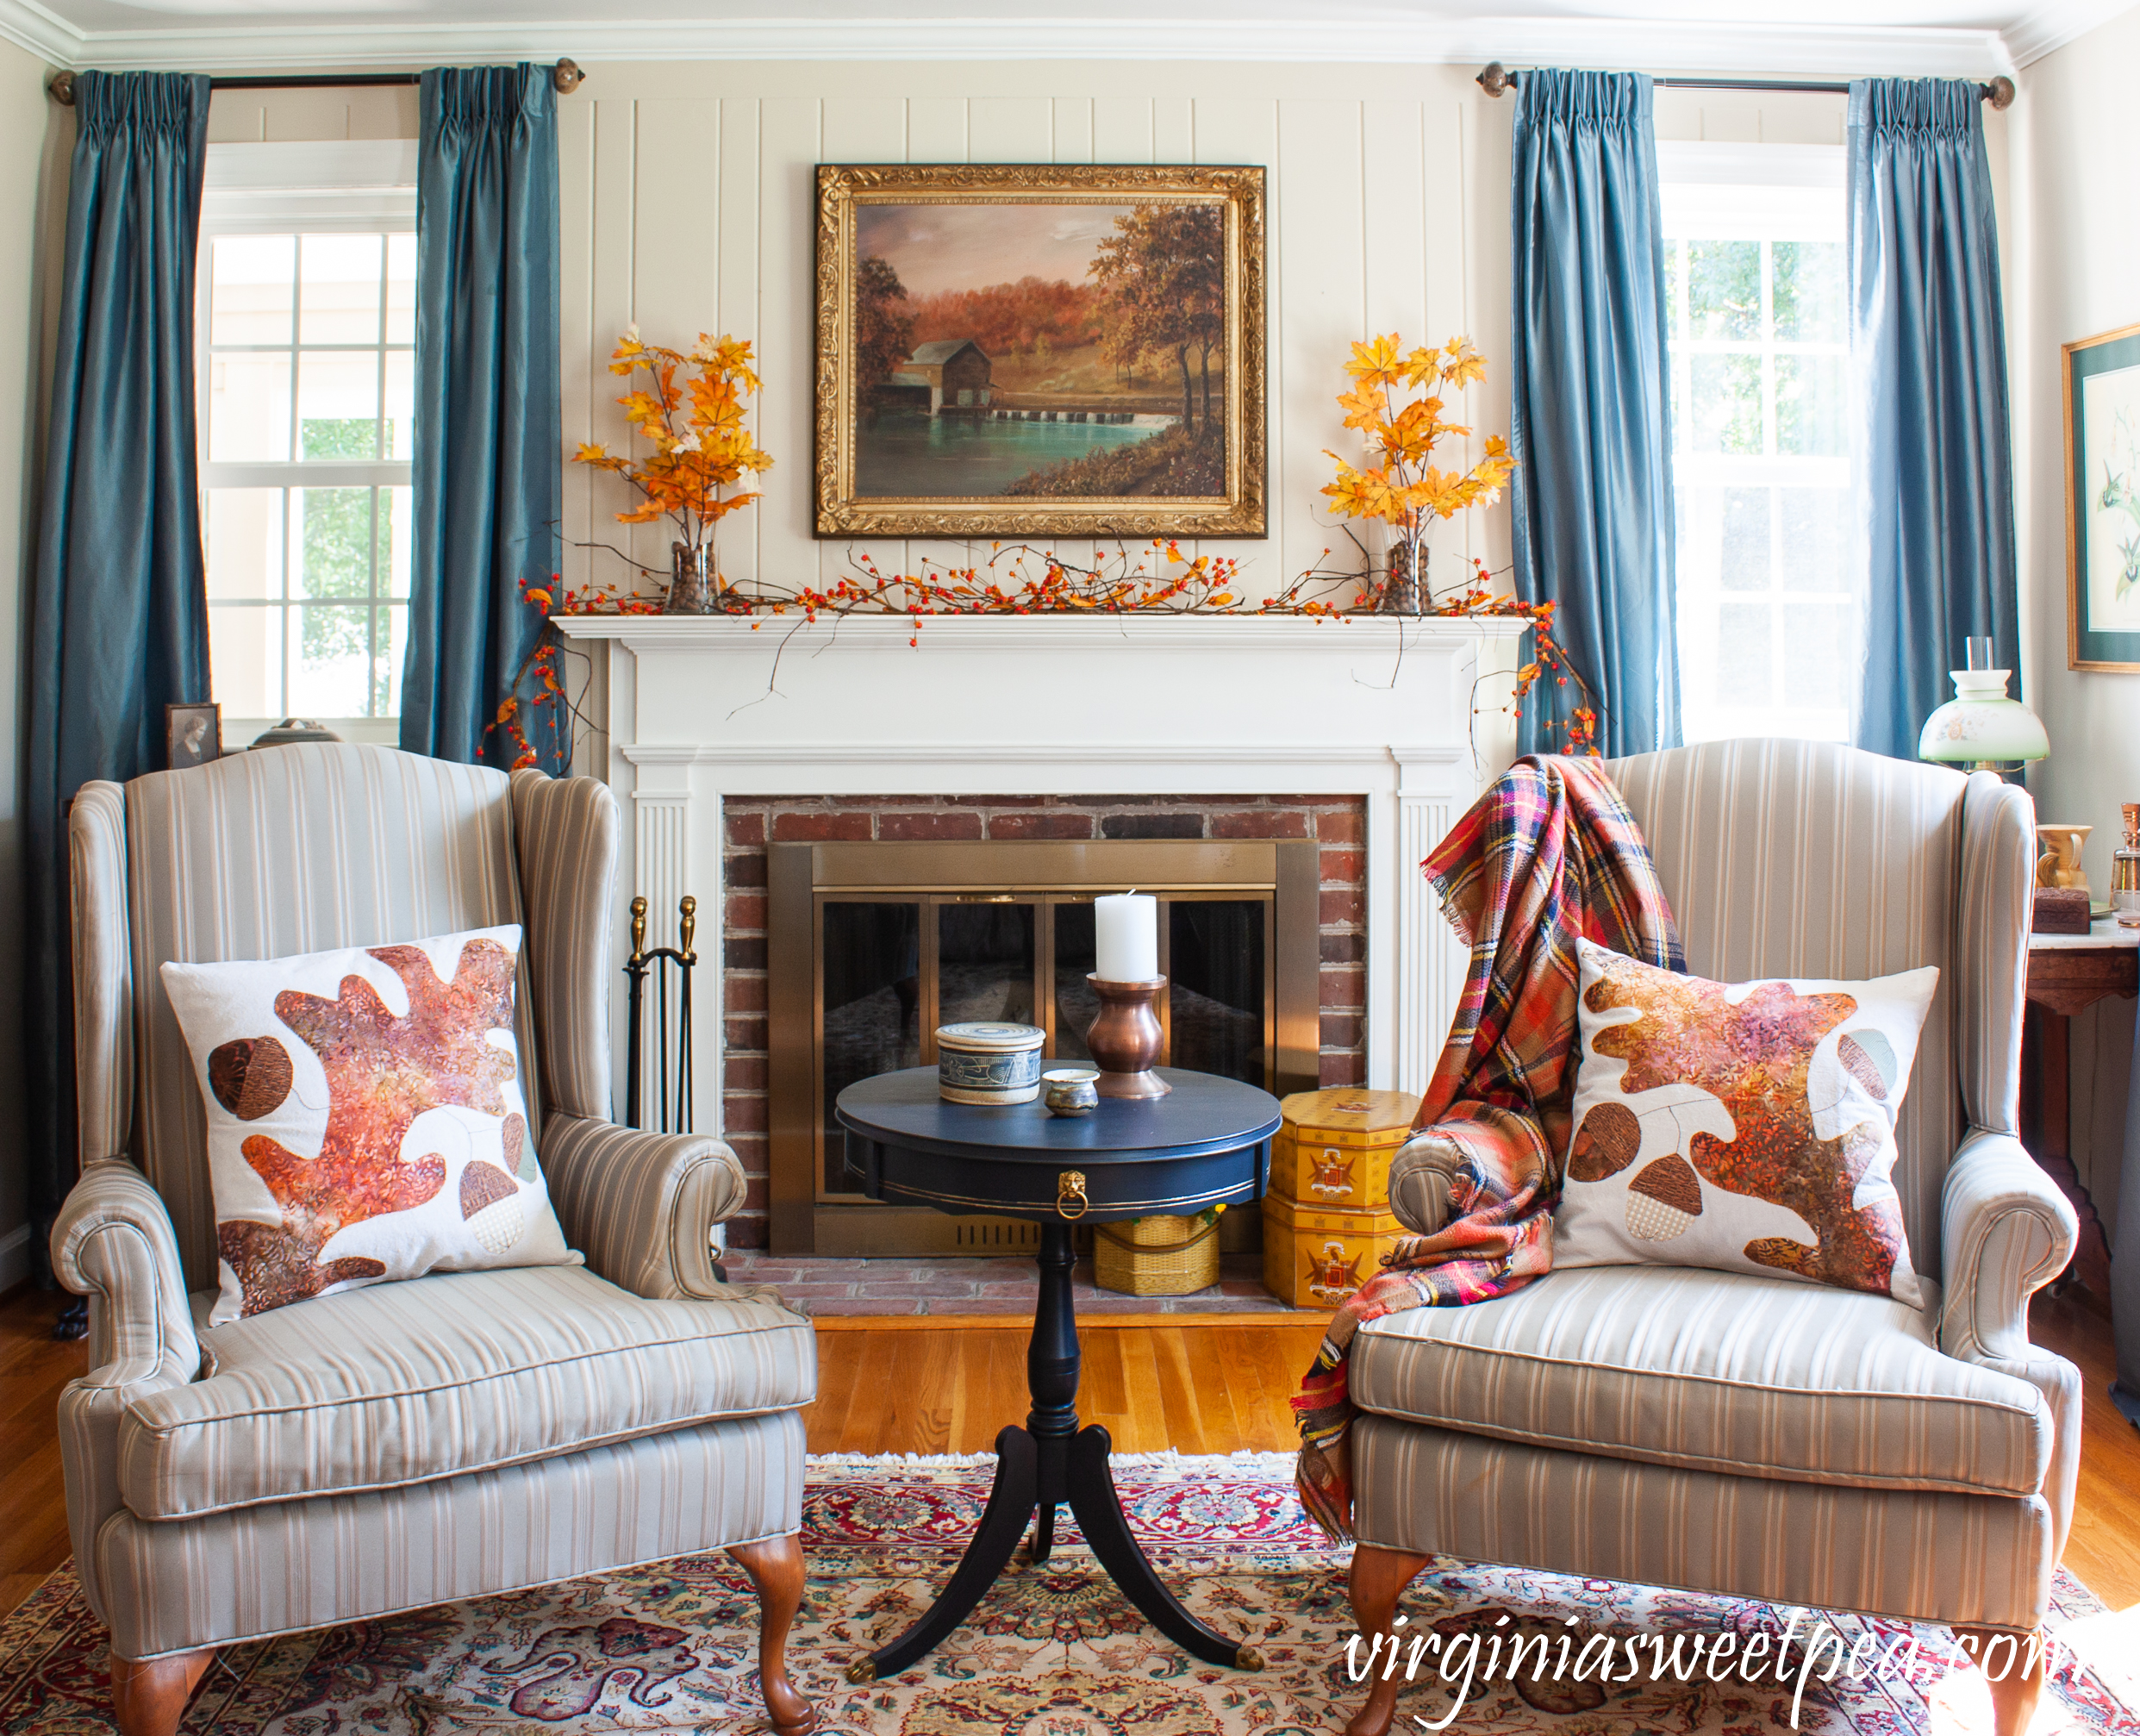 Traditional Fall Mantel - A mantel is decorated for fall with fall foliage anchored in glass vases filled with acorns along with bittersweet, mums, vintage hat boxes, and a vintage painting of a mill in Sussex County, NJ.